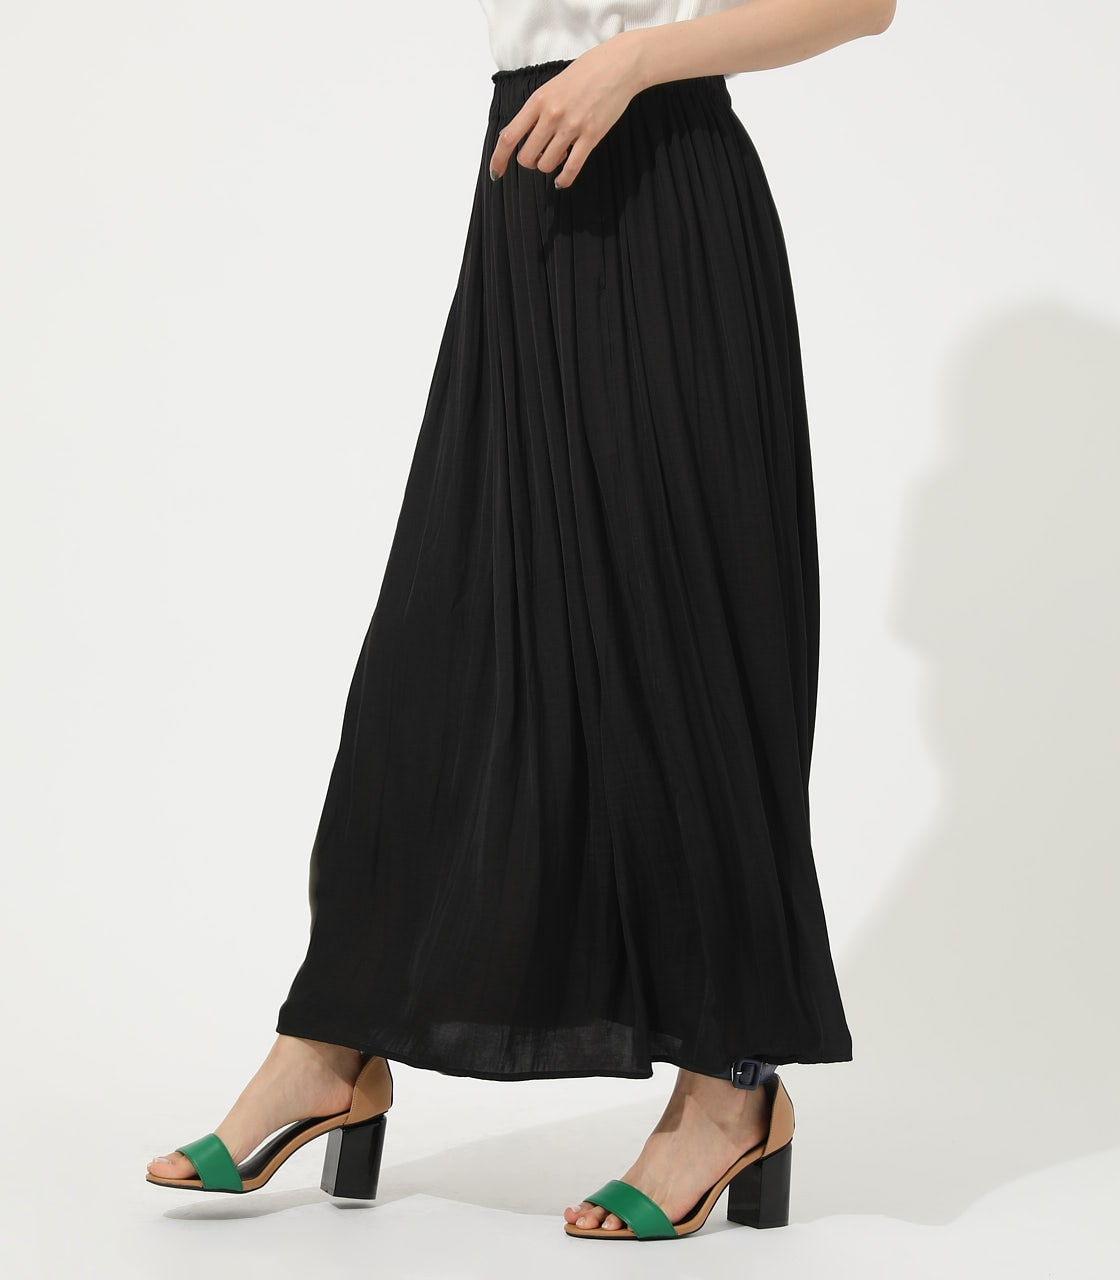 【AZUL BY MOUSSY】GATHER FLARE SKIRT 詳細画像 BLK 2